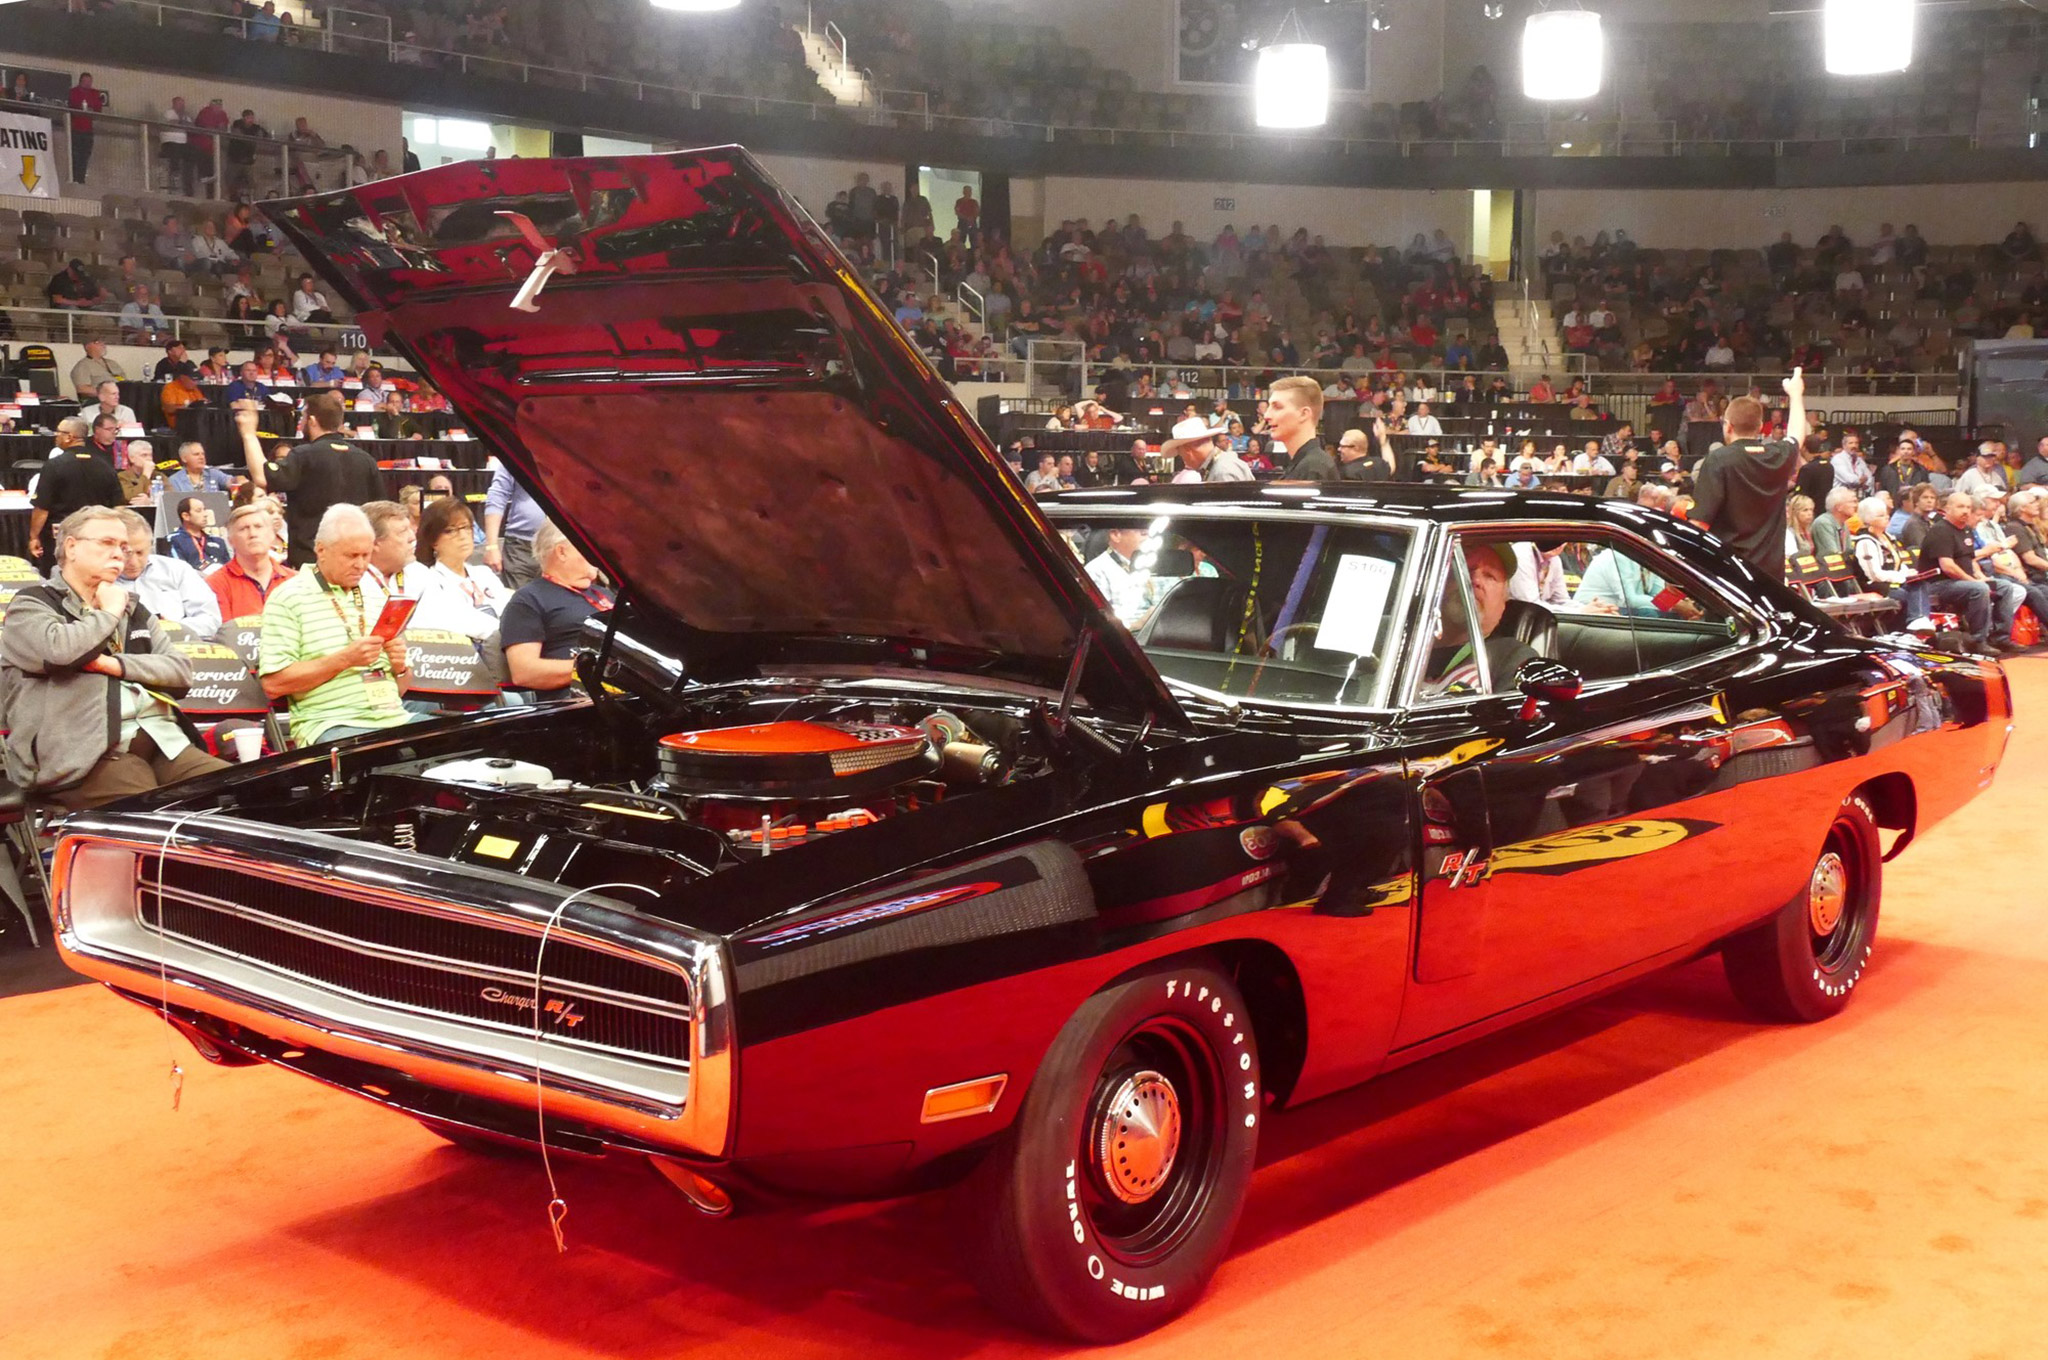 This 1970 Dodge Charger featured a Six Pack and good paperwork. Showing the strength of the V-code package, it was bid to $105,000.